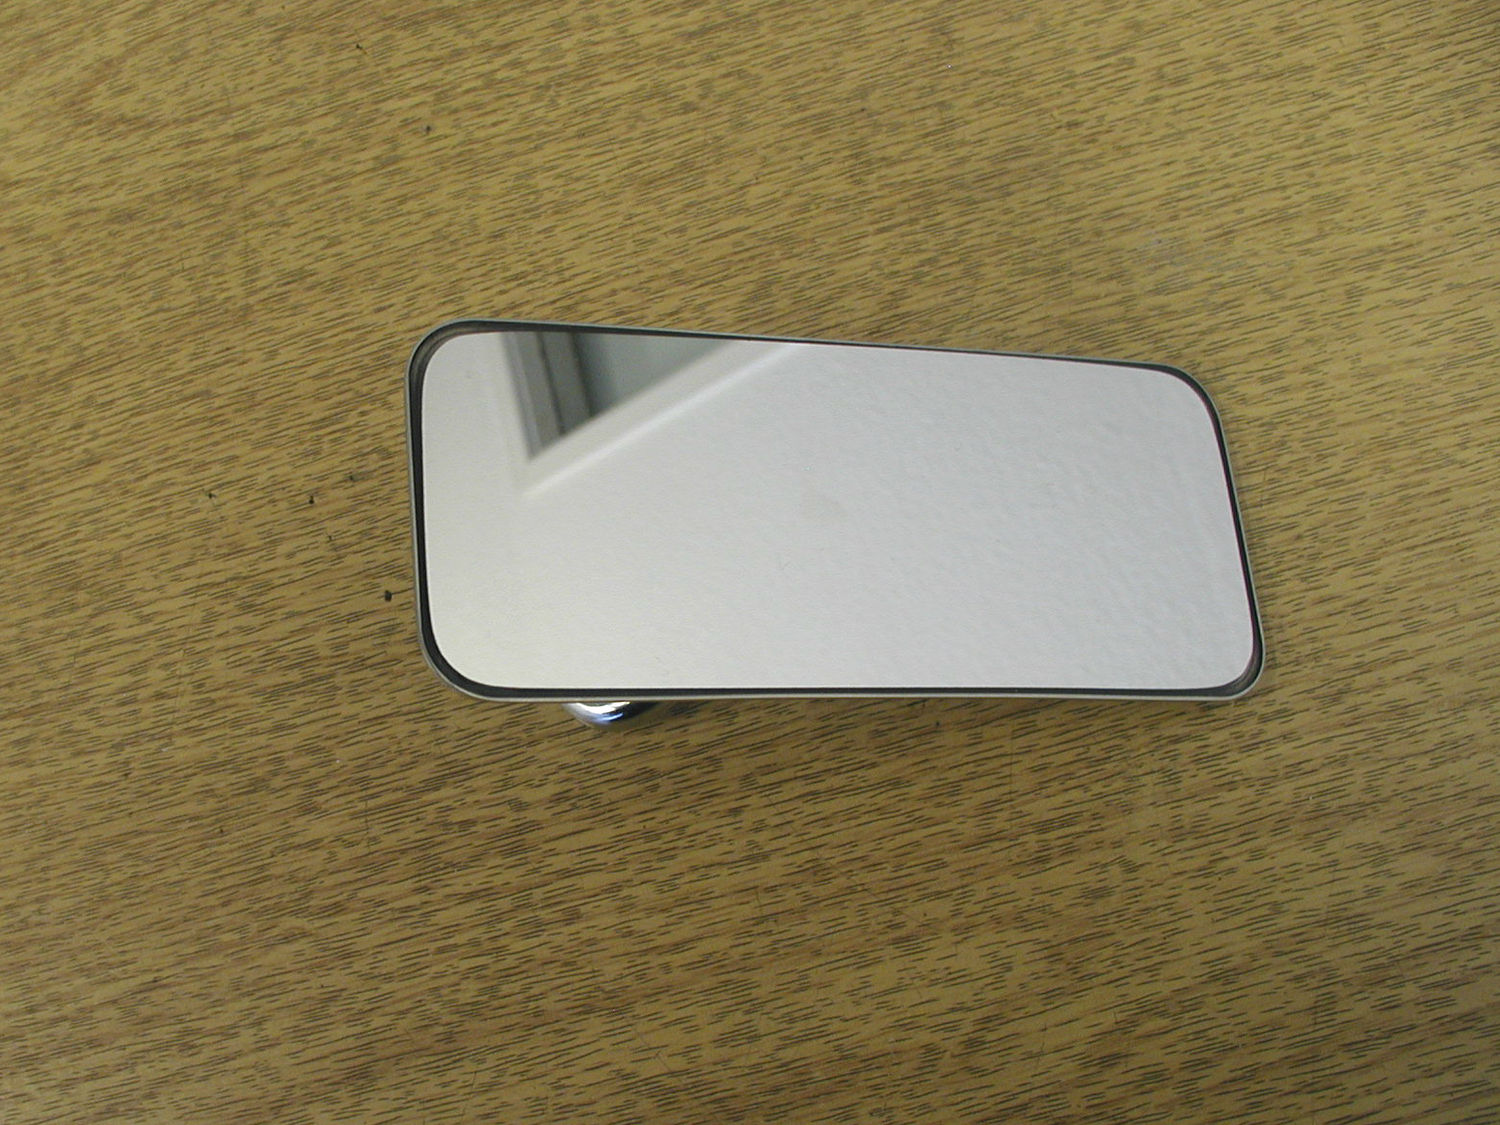 Rear View Mirror - Stainless, Small